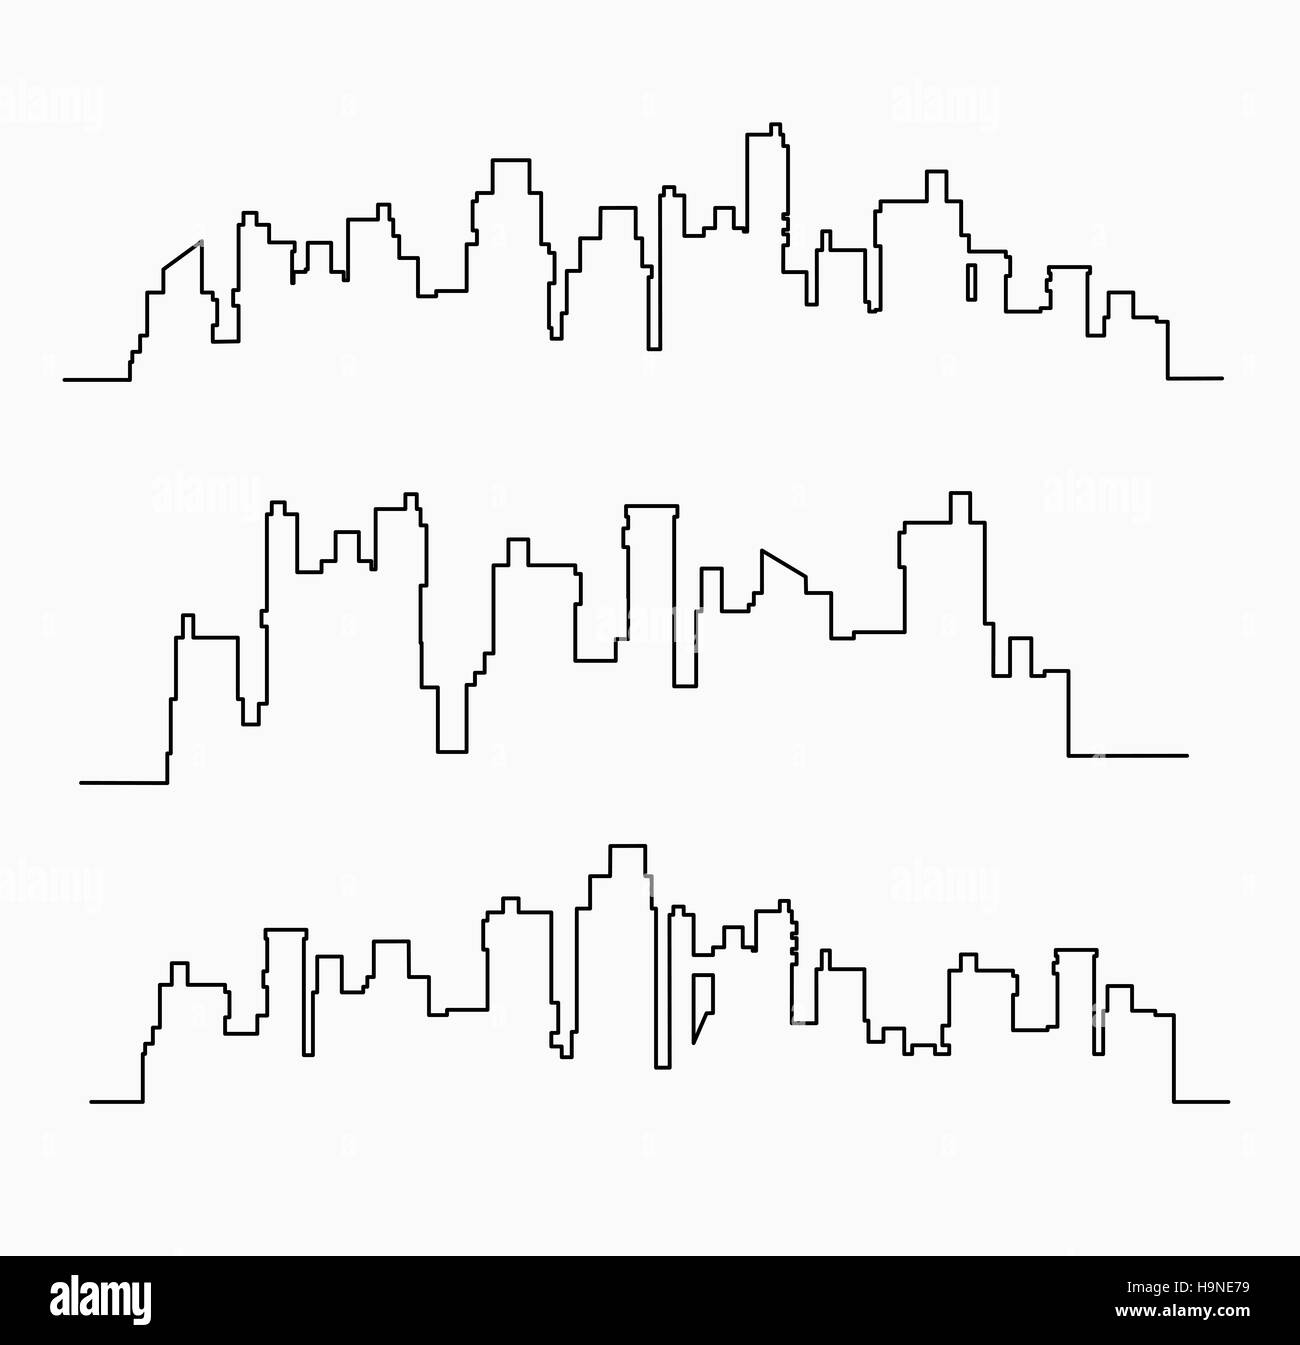 set of linear urban buildings landscape and illustrations of houses and architectural city - Stock Image